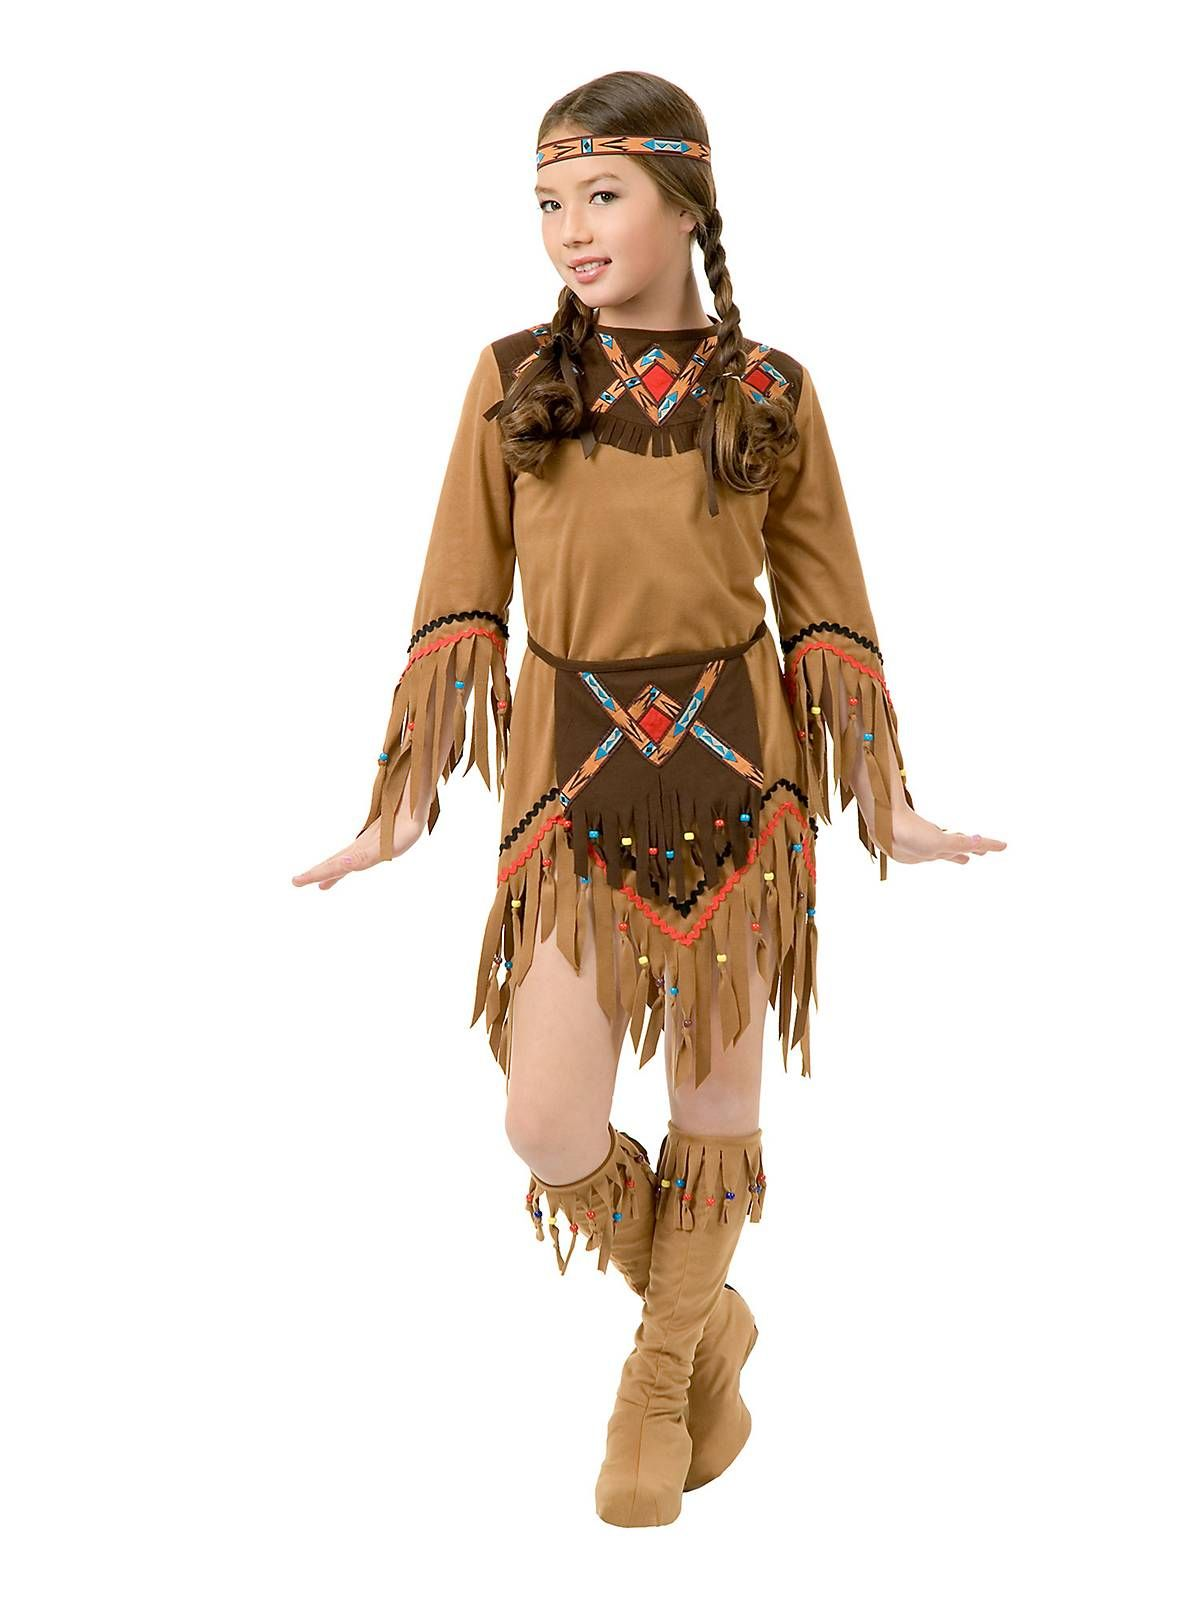 Child Indian Princess Costume | Cheap Indian Costumes for Girls  sc 1 st  Pinterest & Indian Princess Child Costume | Indian princess Indian costumes and ...